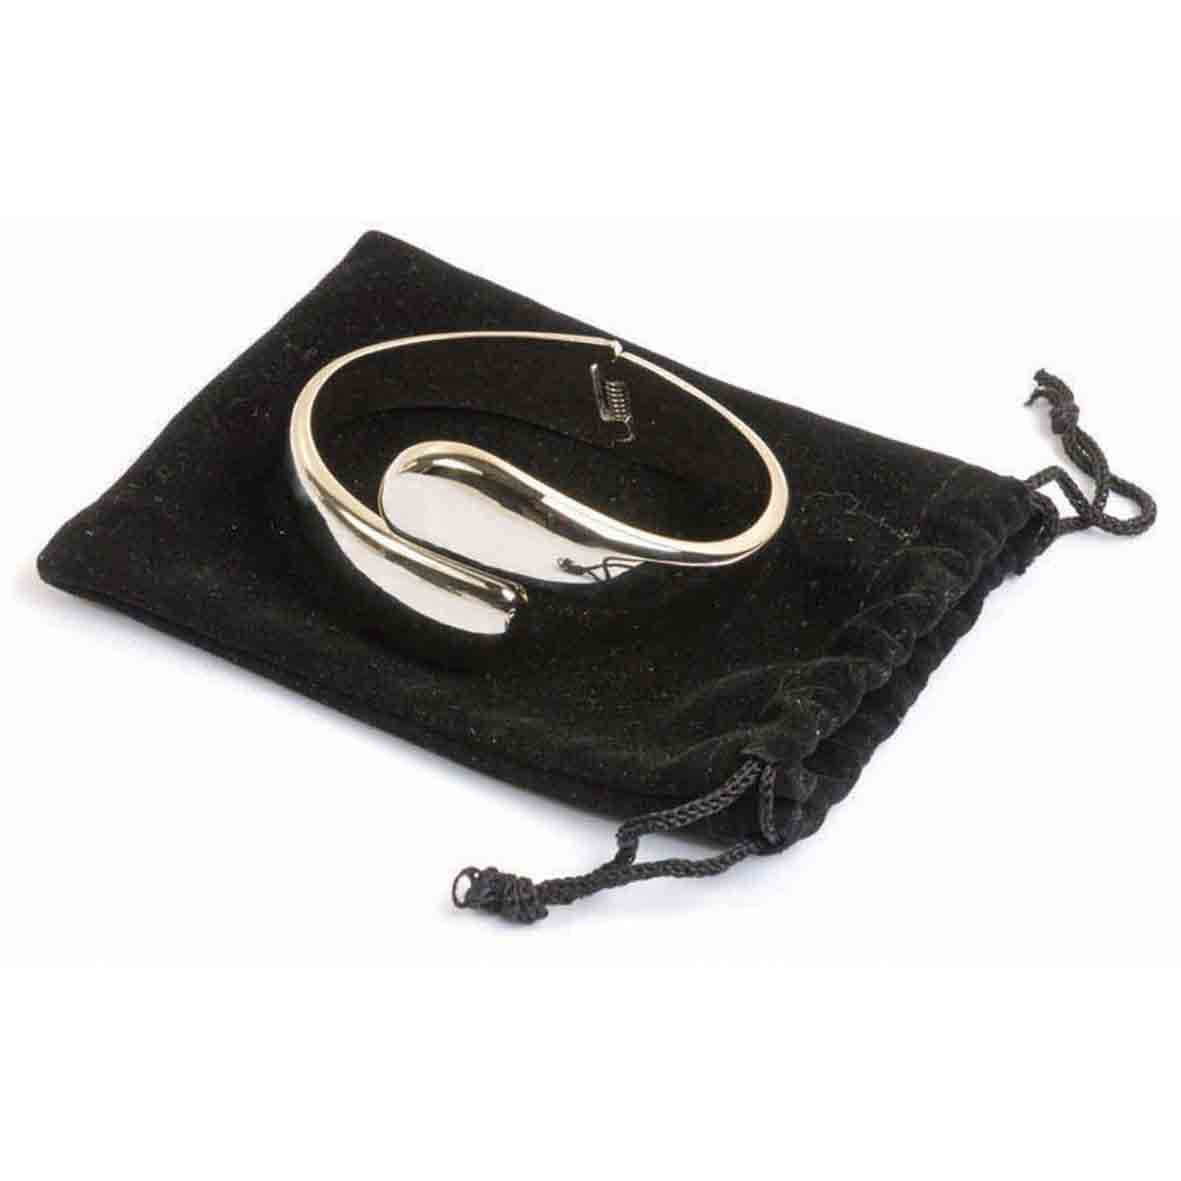 Metal bag hanger and bracelet in pouch sip-13900